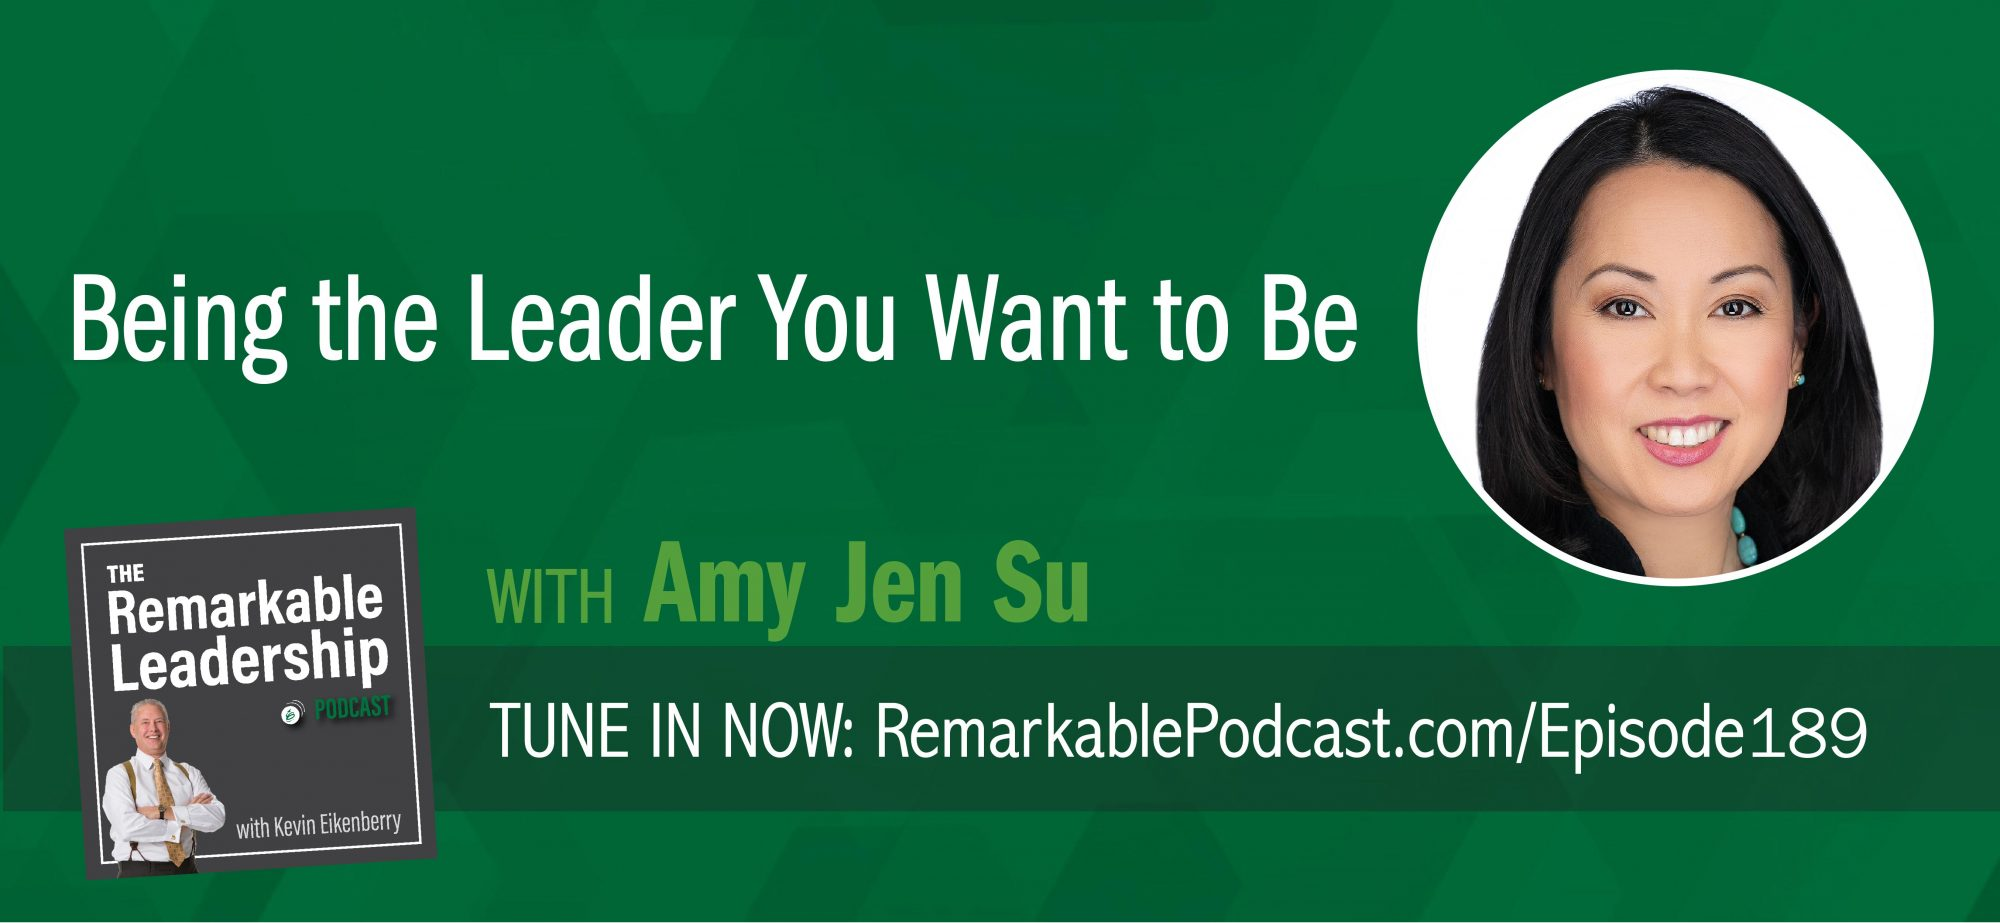 "You know those good days. You wake up energized and confident. You cross stuff off your list, have productive meetings, make good decisions. In short, you are your best self. The question becomes how do you bring your best self every day? Amy Jen Su is the author of The Leader You Want to Be: Five Essential Principles for Bringing Out Your Best Self—Every Day. She joins Kevin to discuss both the principles that bring out our best and the pitfalls that trap us. If we get caught up in ""doing"" and let the demands of life take over before we can connect to ourselves, we not only impact our best self but our team and our culture."